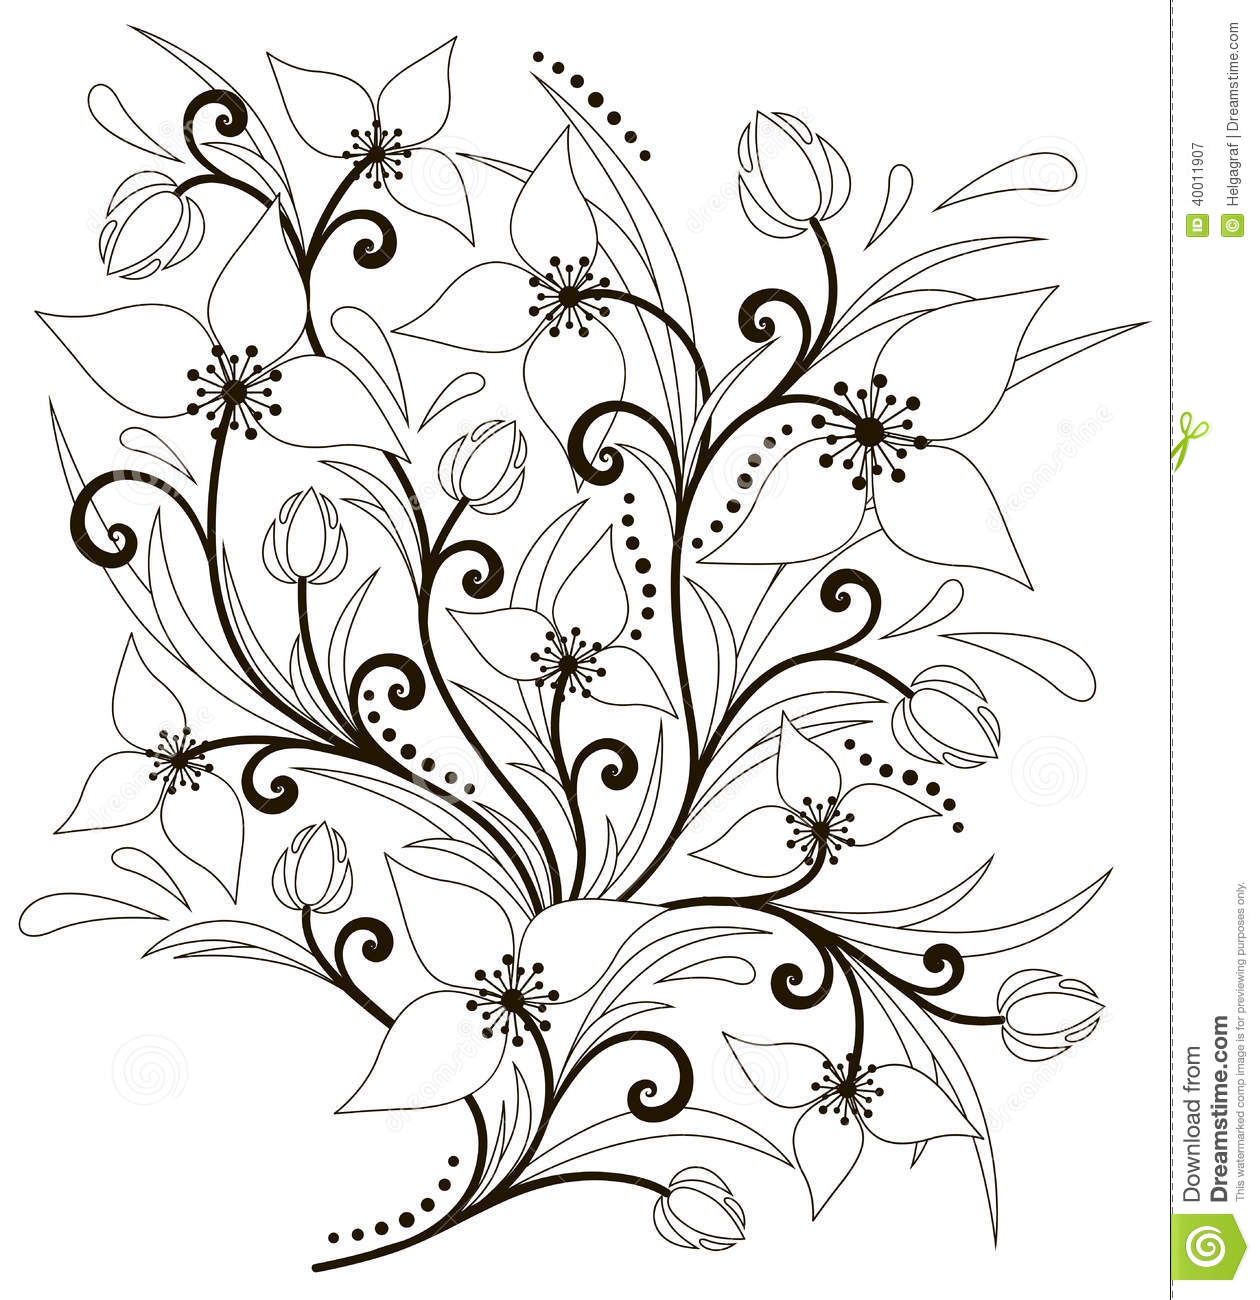 Flower Arrangement Stock Vector Illustration Of Leaves 40011907